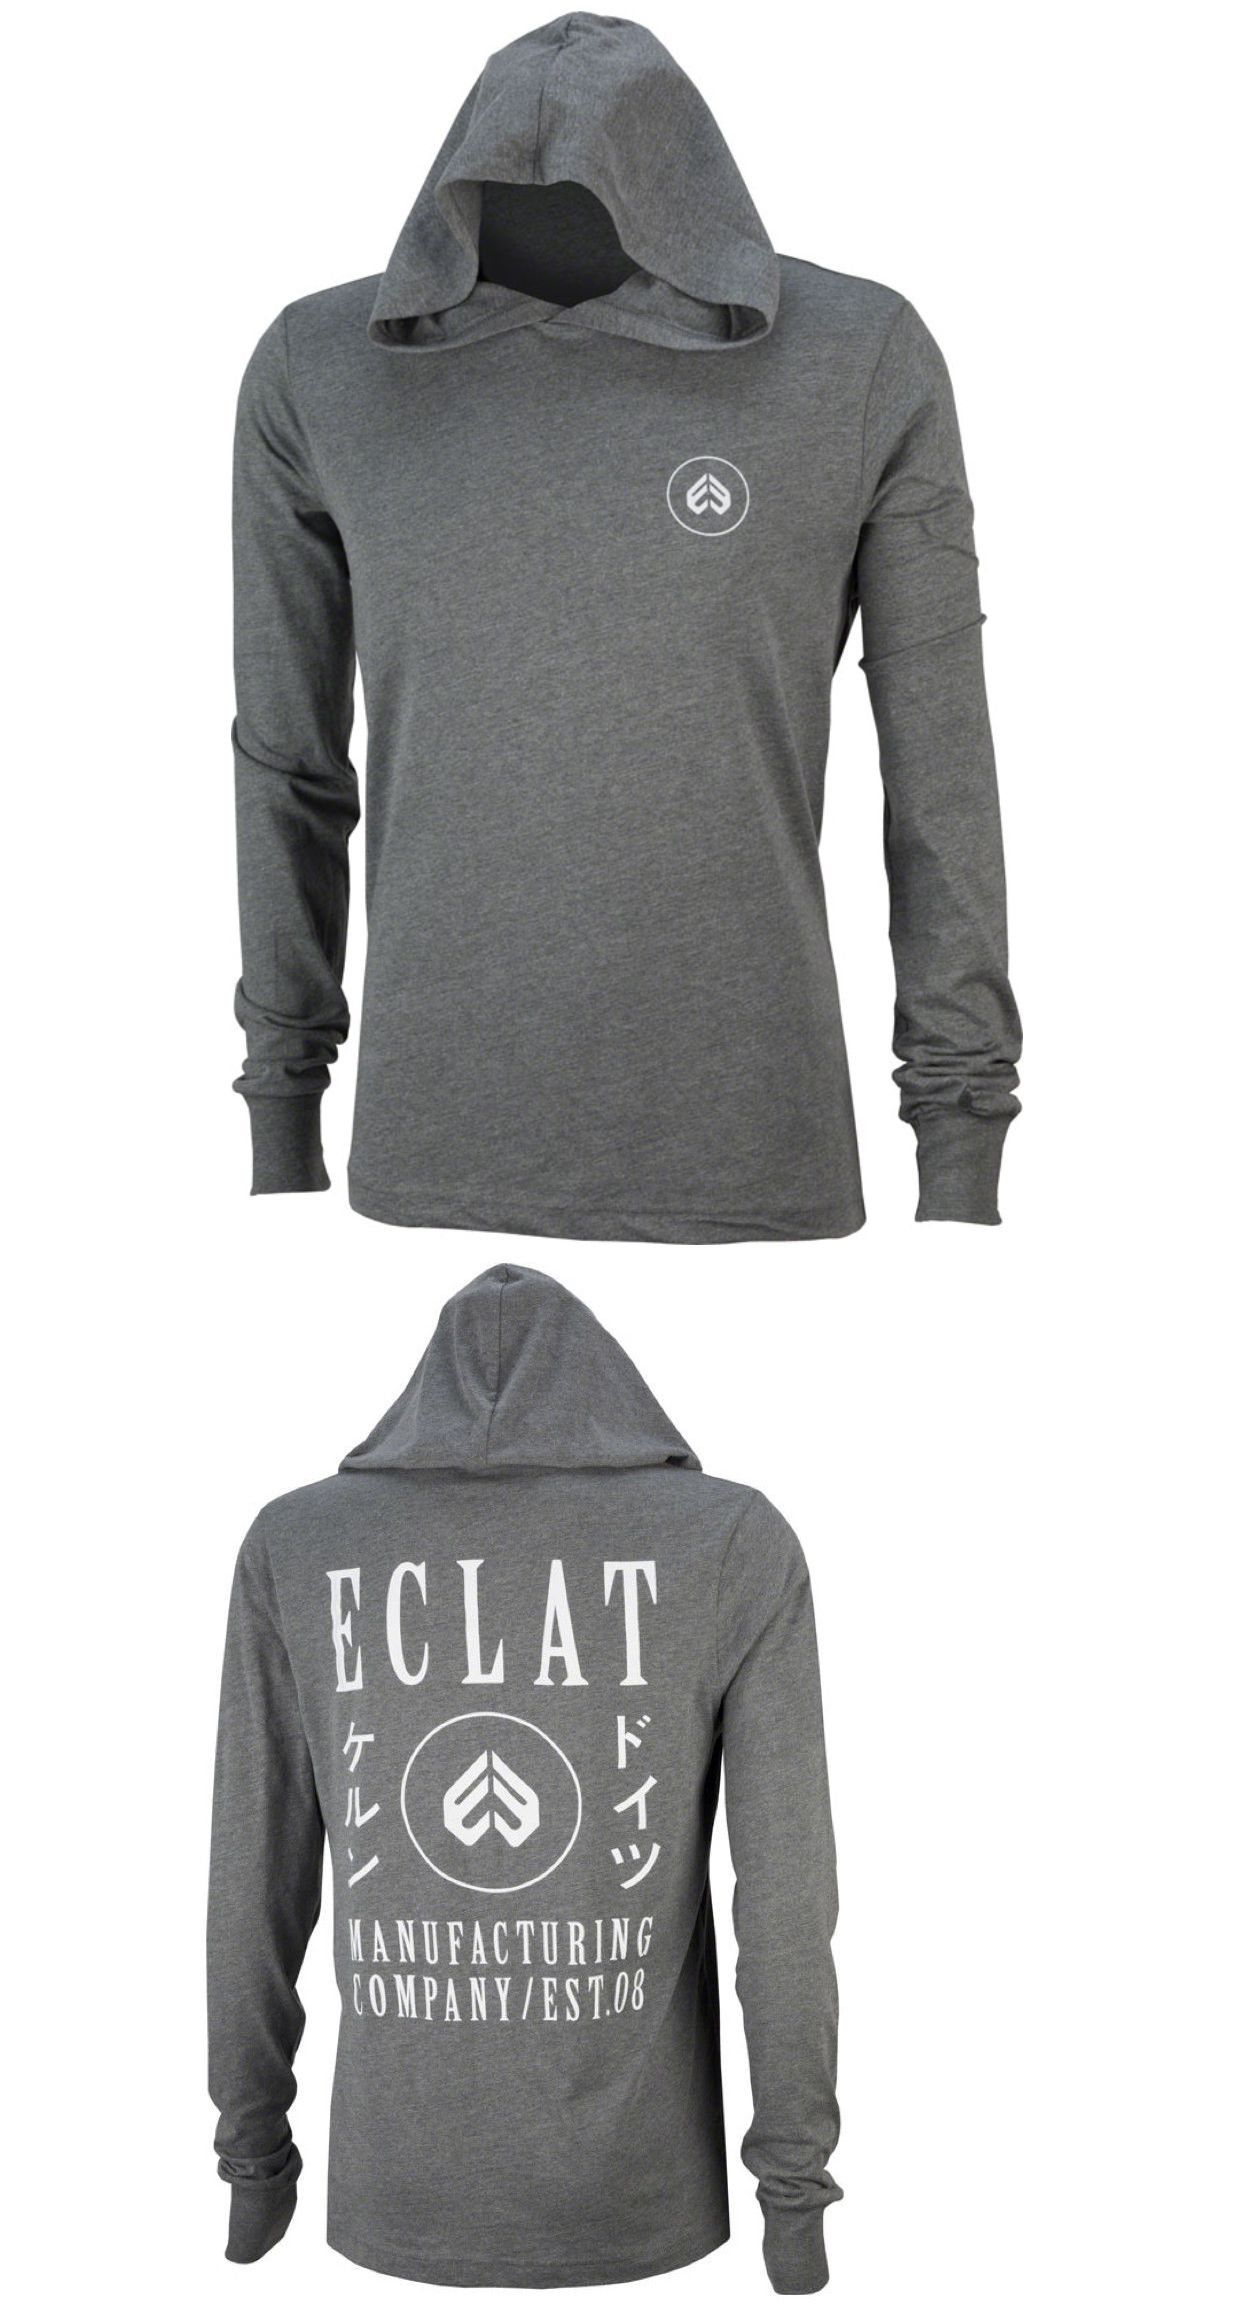 Casual T-Shirts and Tops 177851  Eclat Bmx Bike Circle Icon Hooded Long  Sleeve T-Shirt Heather Gray -  BUY IT NOW ONLY   39.99 on  eBay  casual   eclat ... a4a099e3e